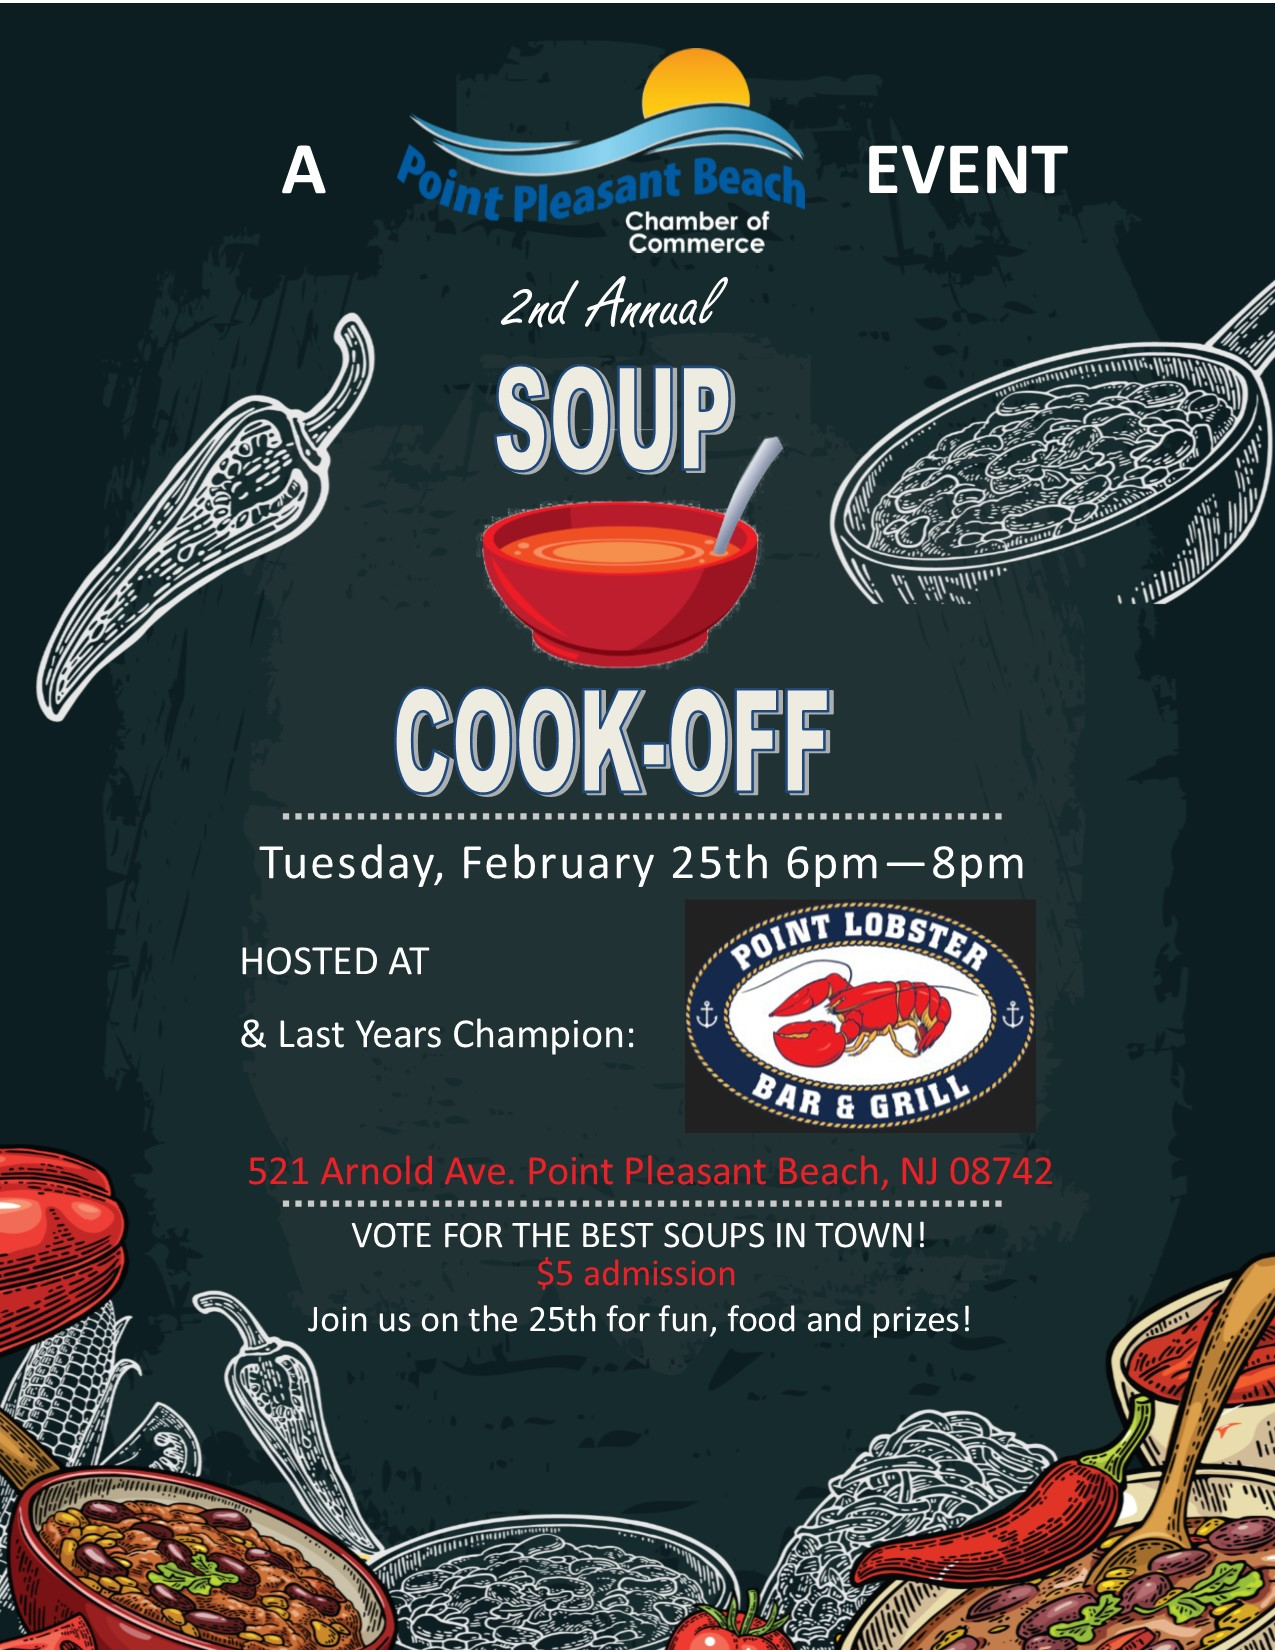 Point Pleasant Beach Chamber of Commerce's 2nd Annual Soup Cook Off